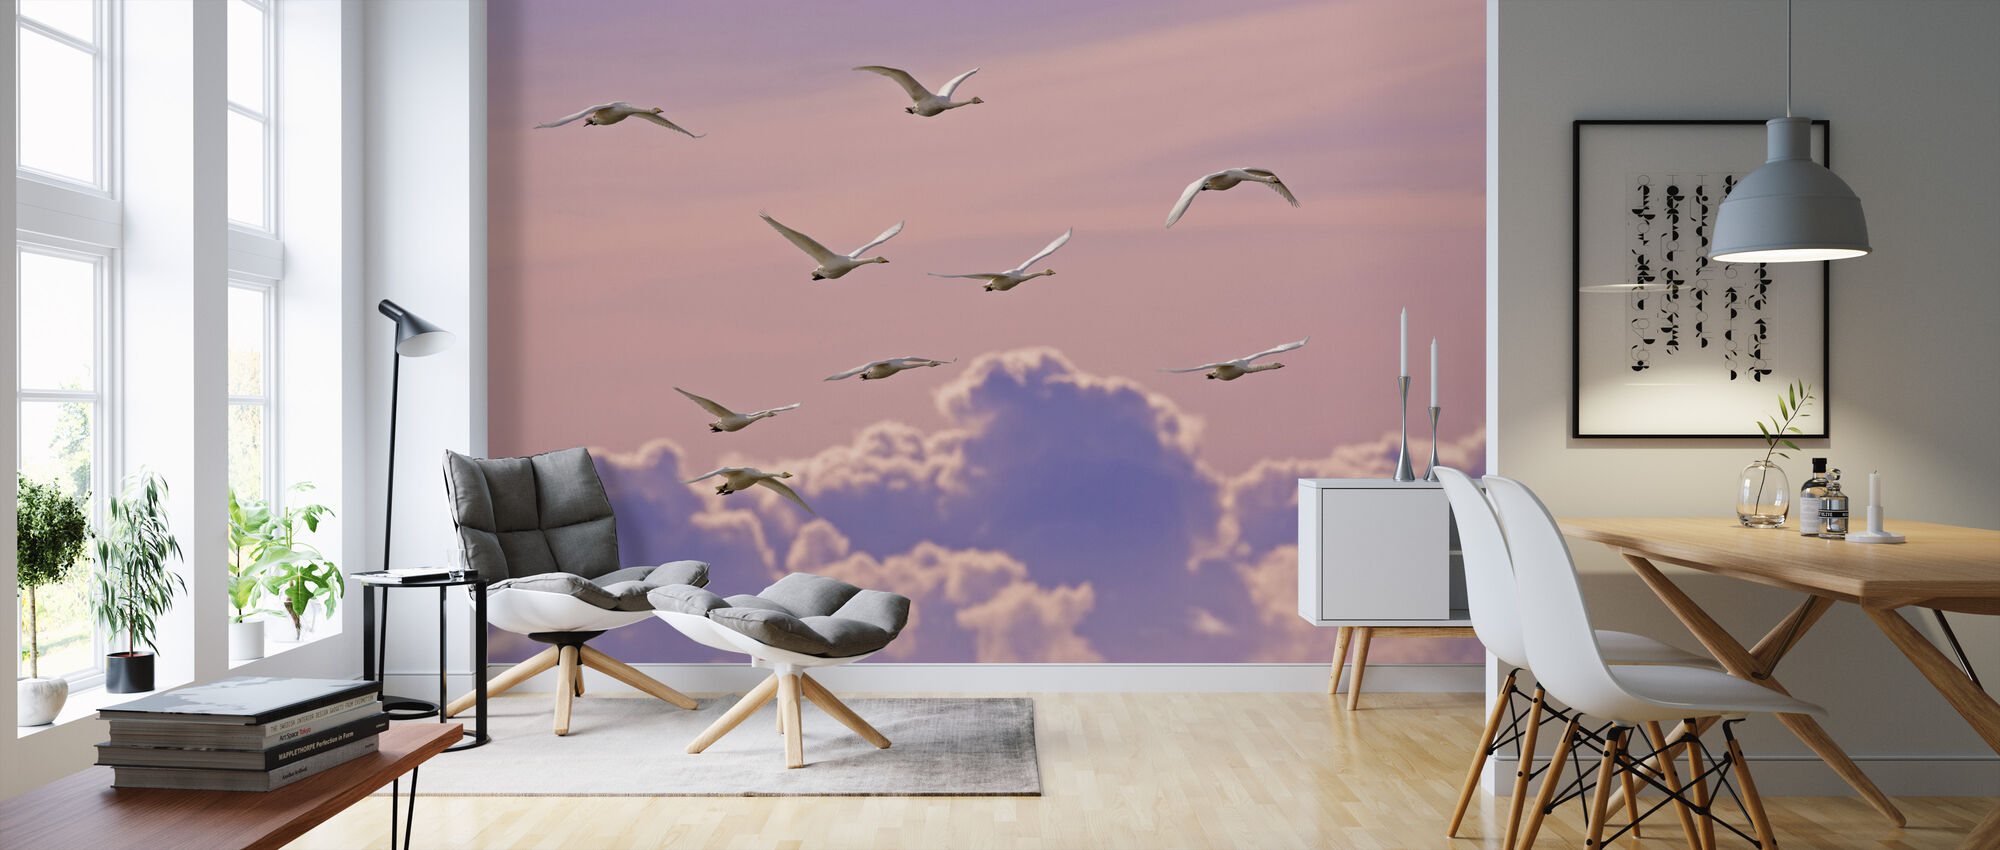 Whooper Swans - Wallpaper - Living Room